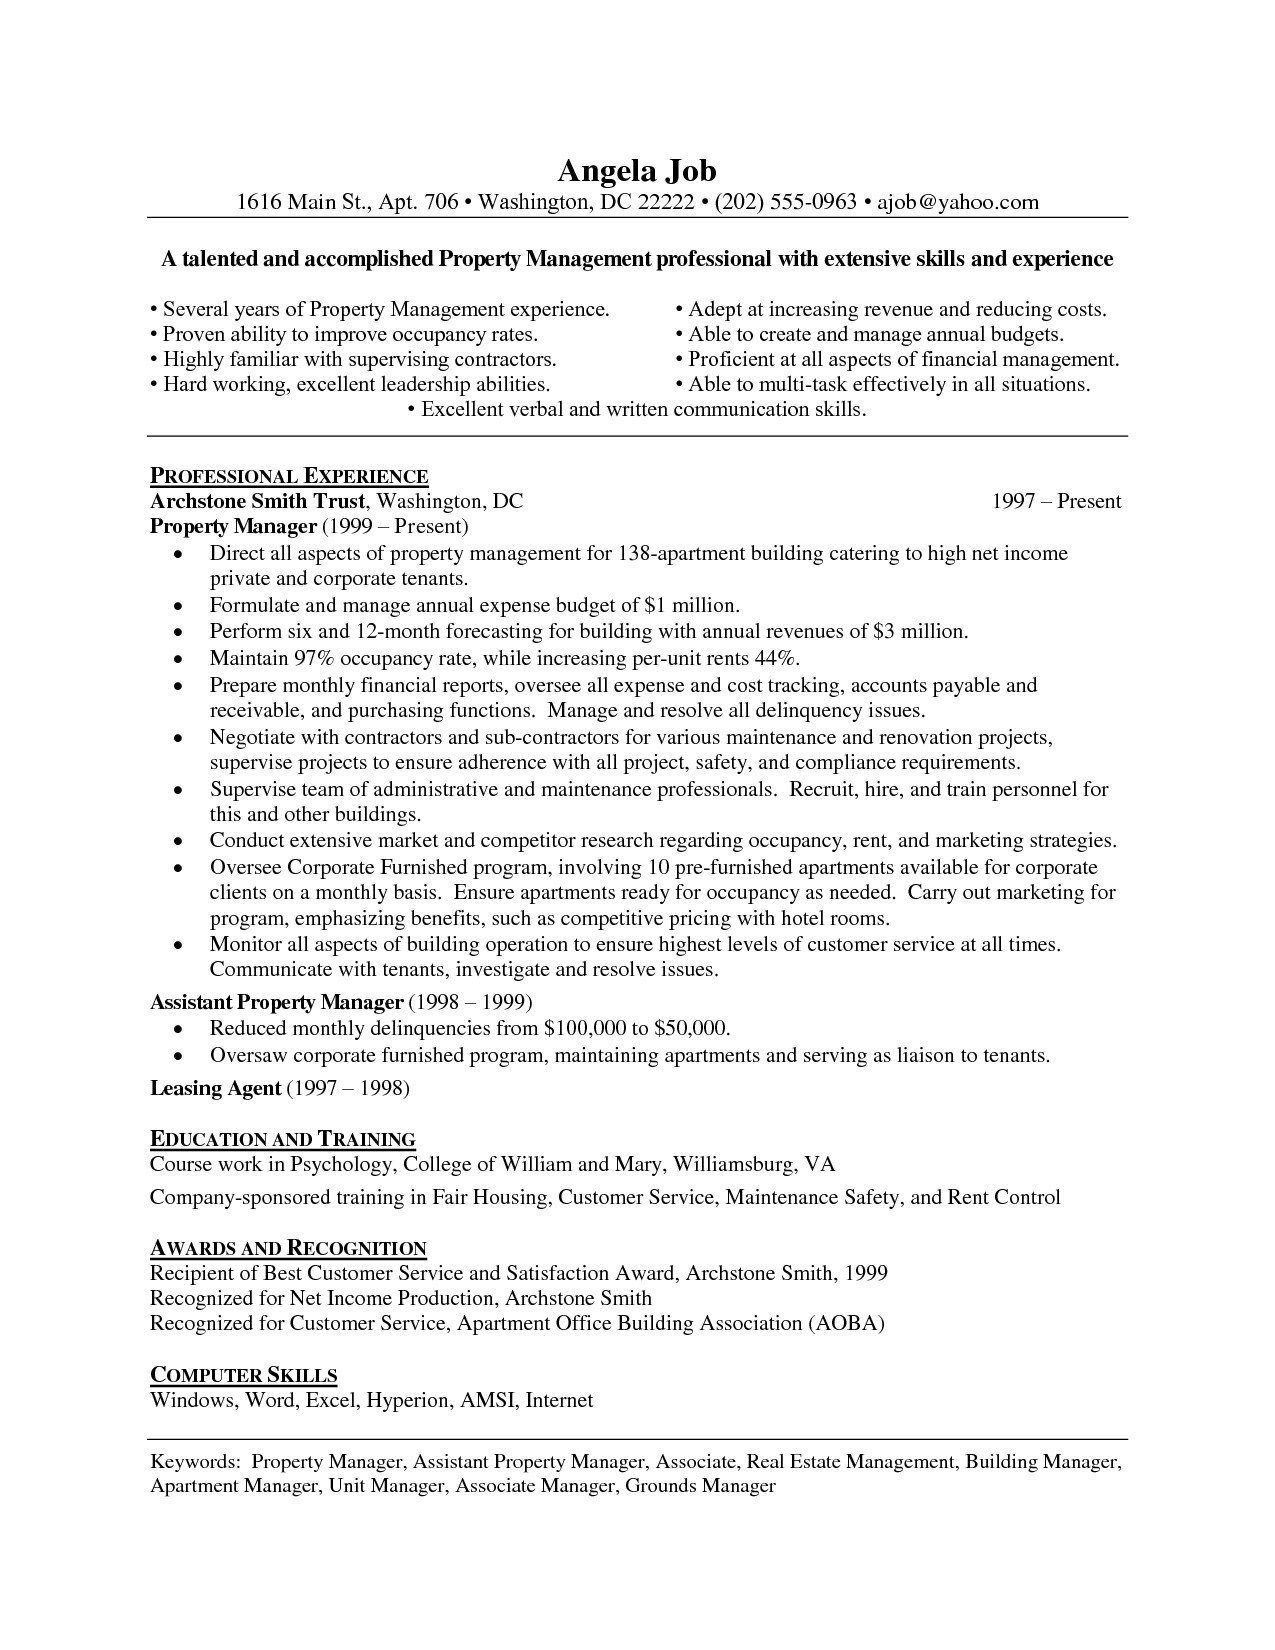 tips to write stunning property manager resume skills cover letter for apartment mentor Resume Apartment Manager Resume